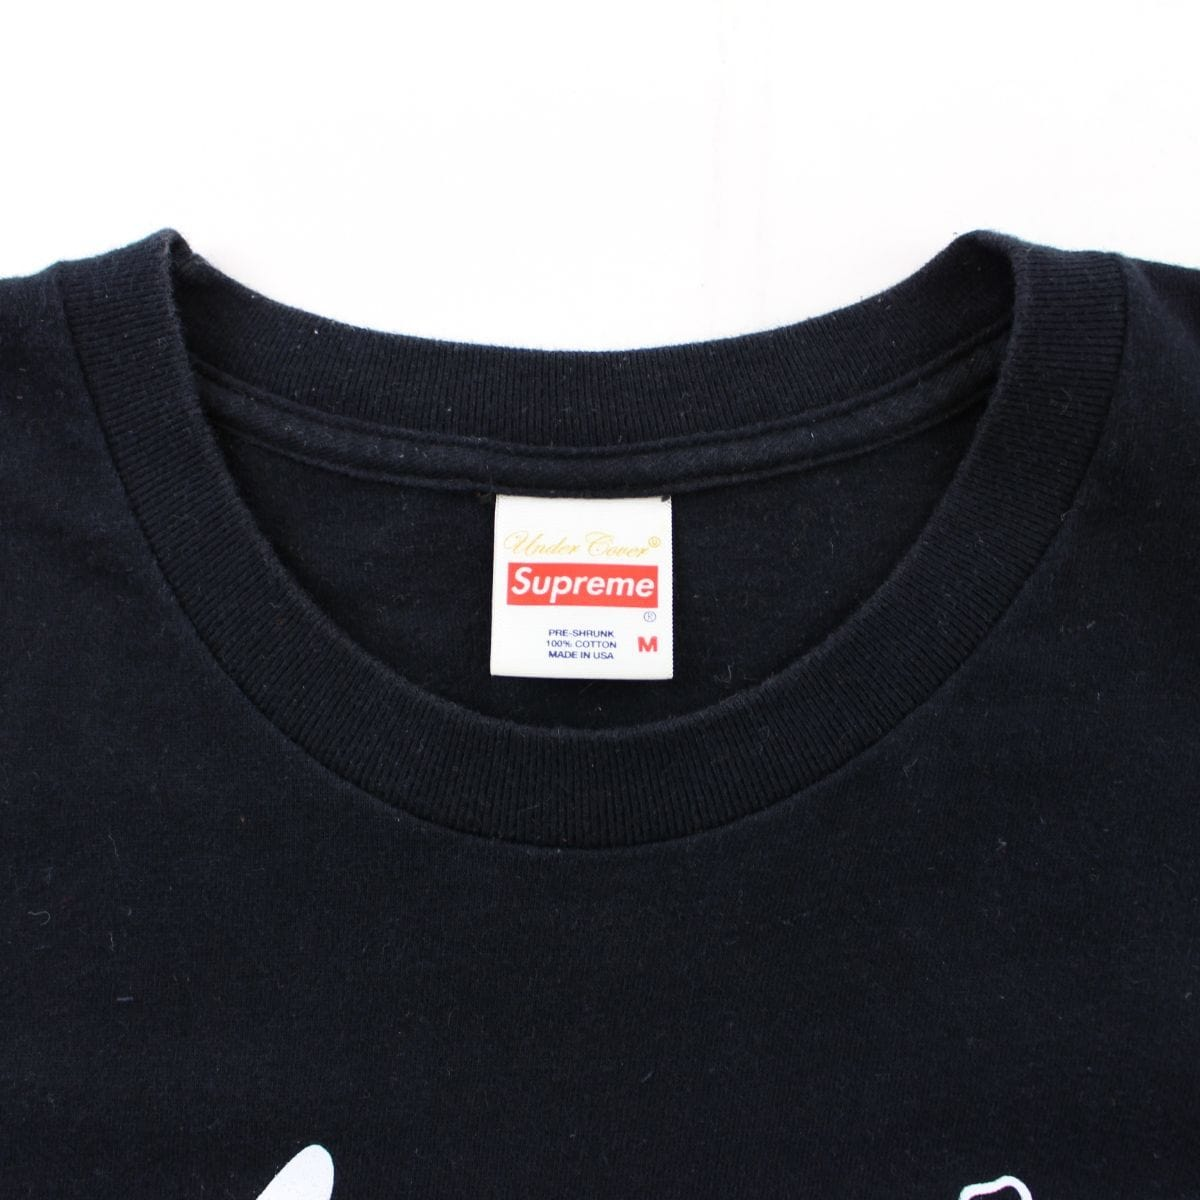 Supreme x Undercover Dolls Tee Black - SaruGeneral